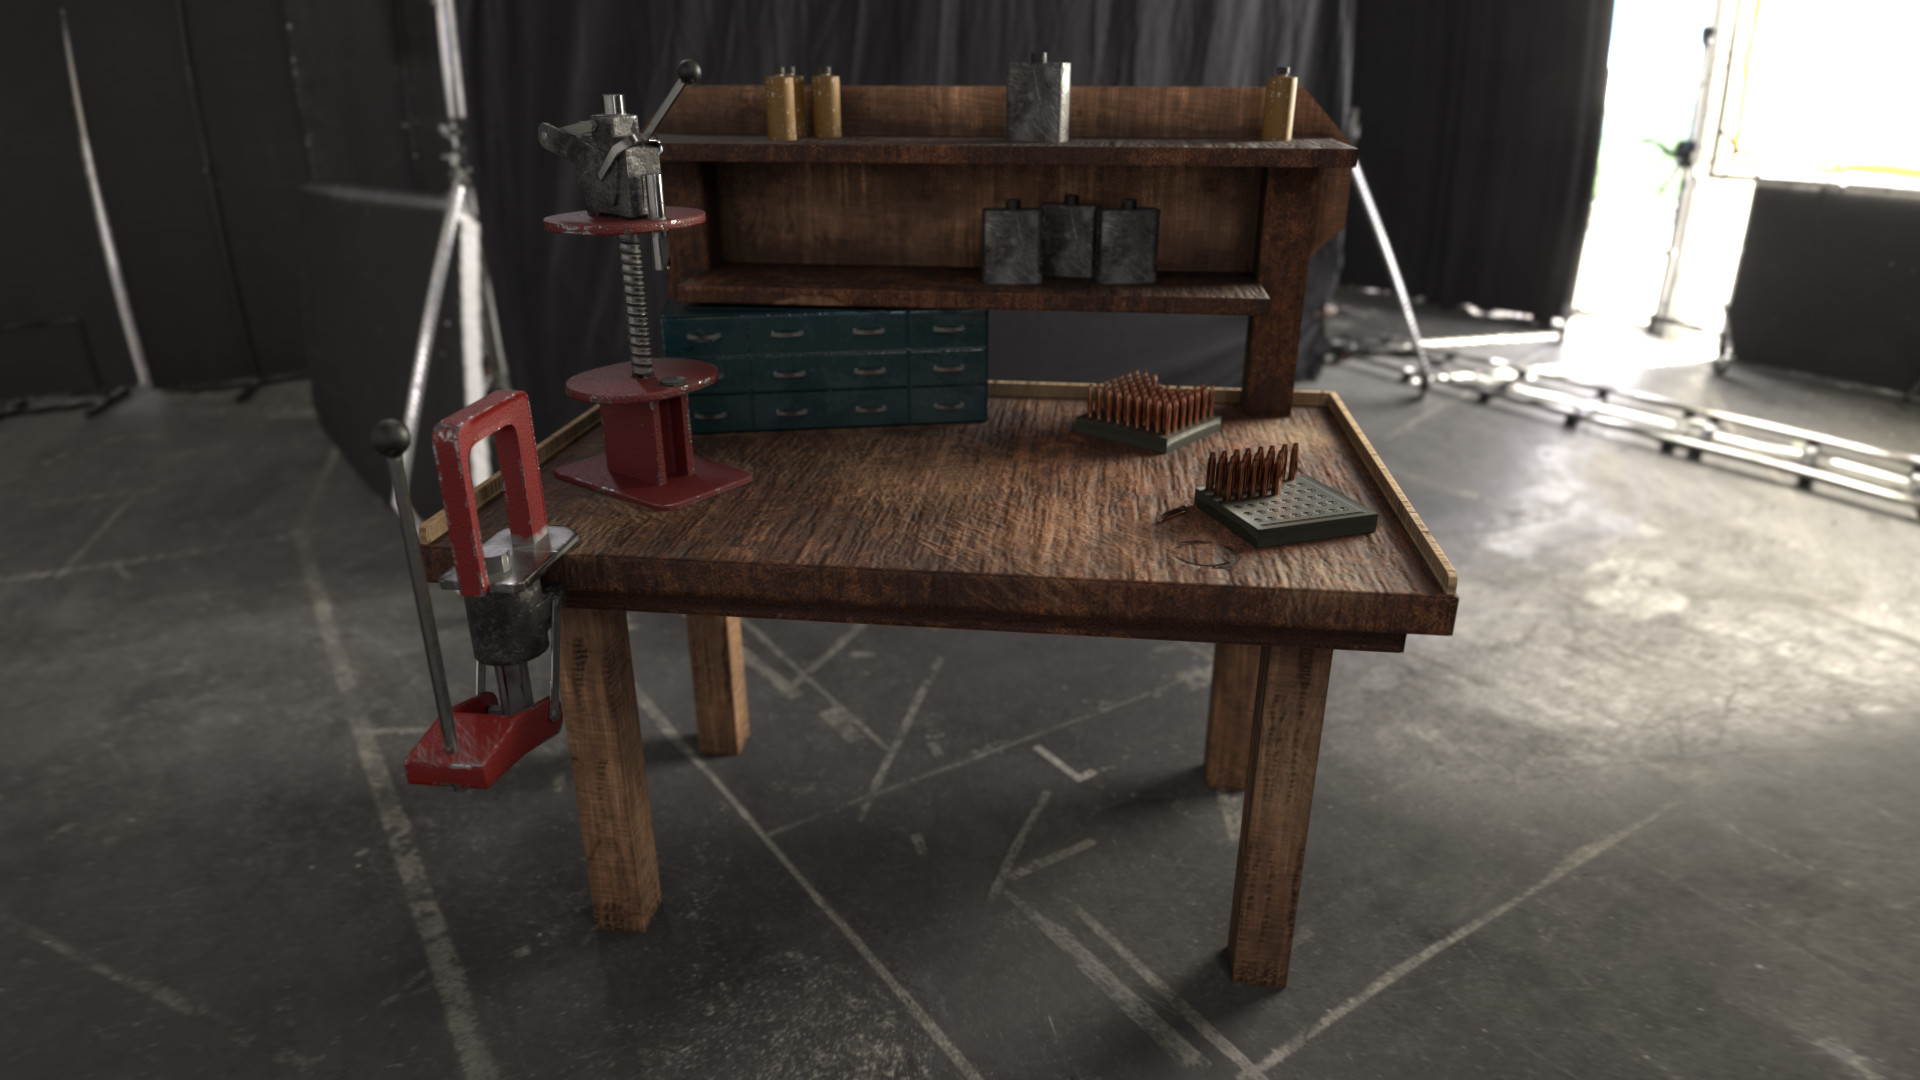 Magnificent Artstation Reloading Bench Andrew Sherman Beatyapartments Chair Design Images Beatyapartmentscom